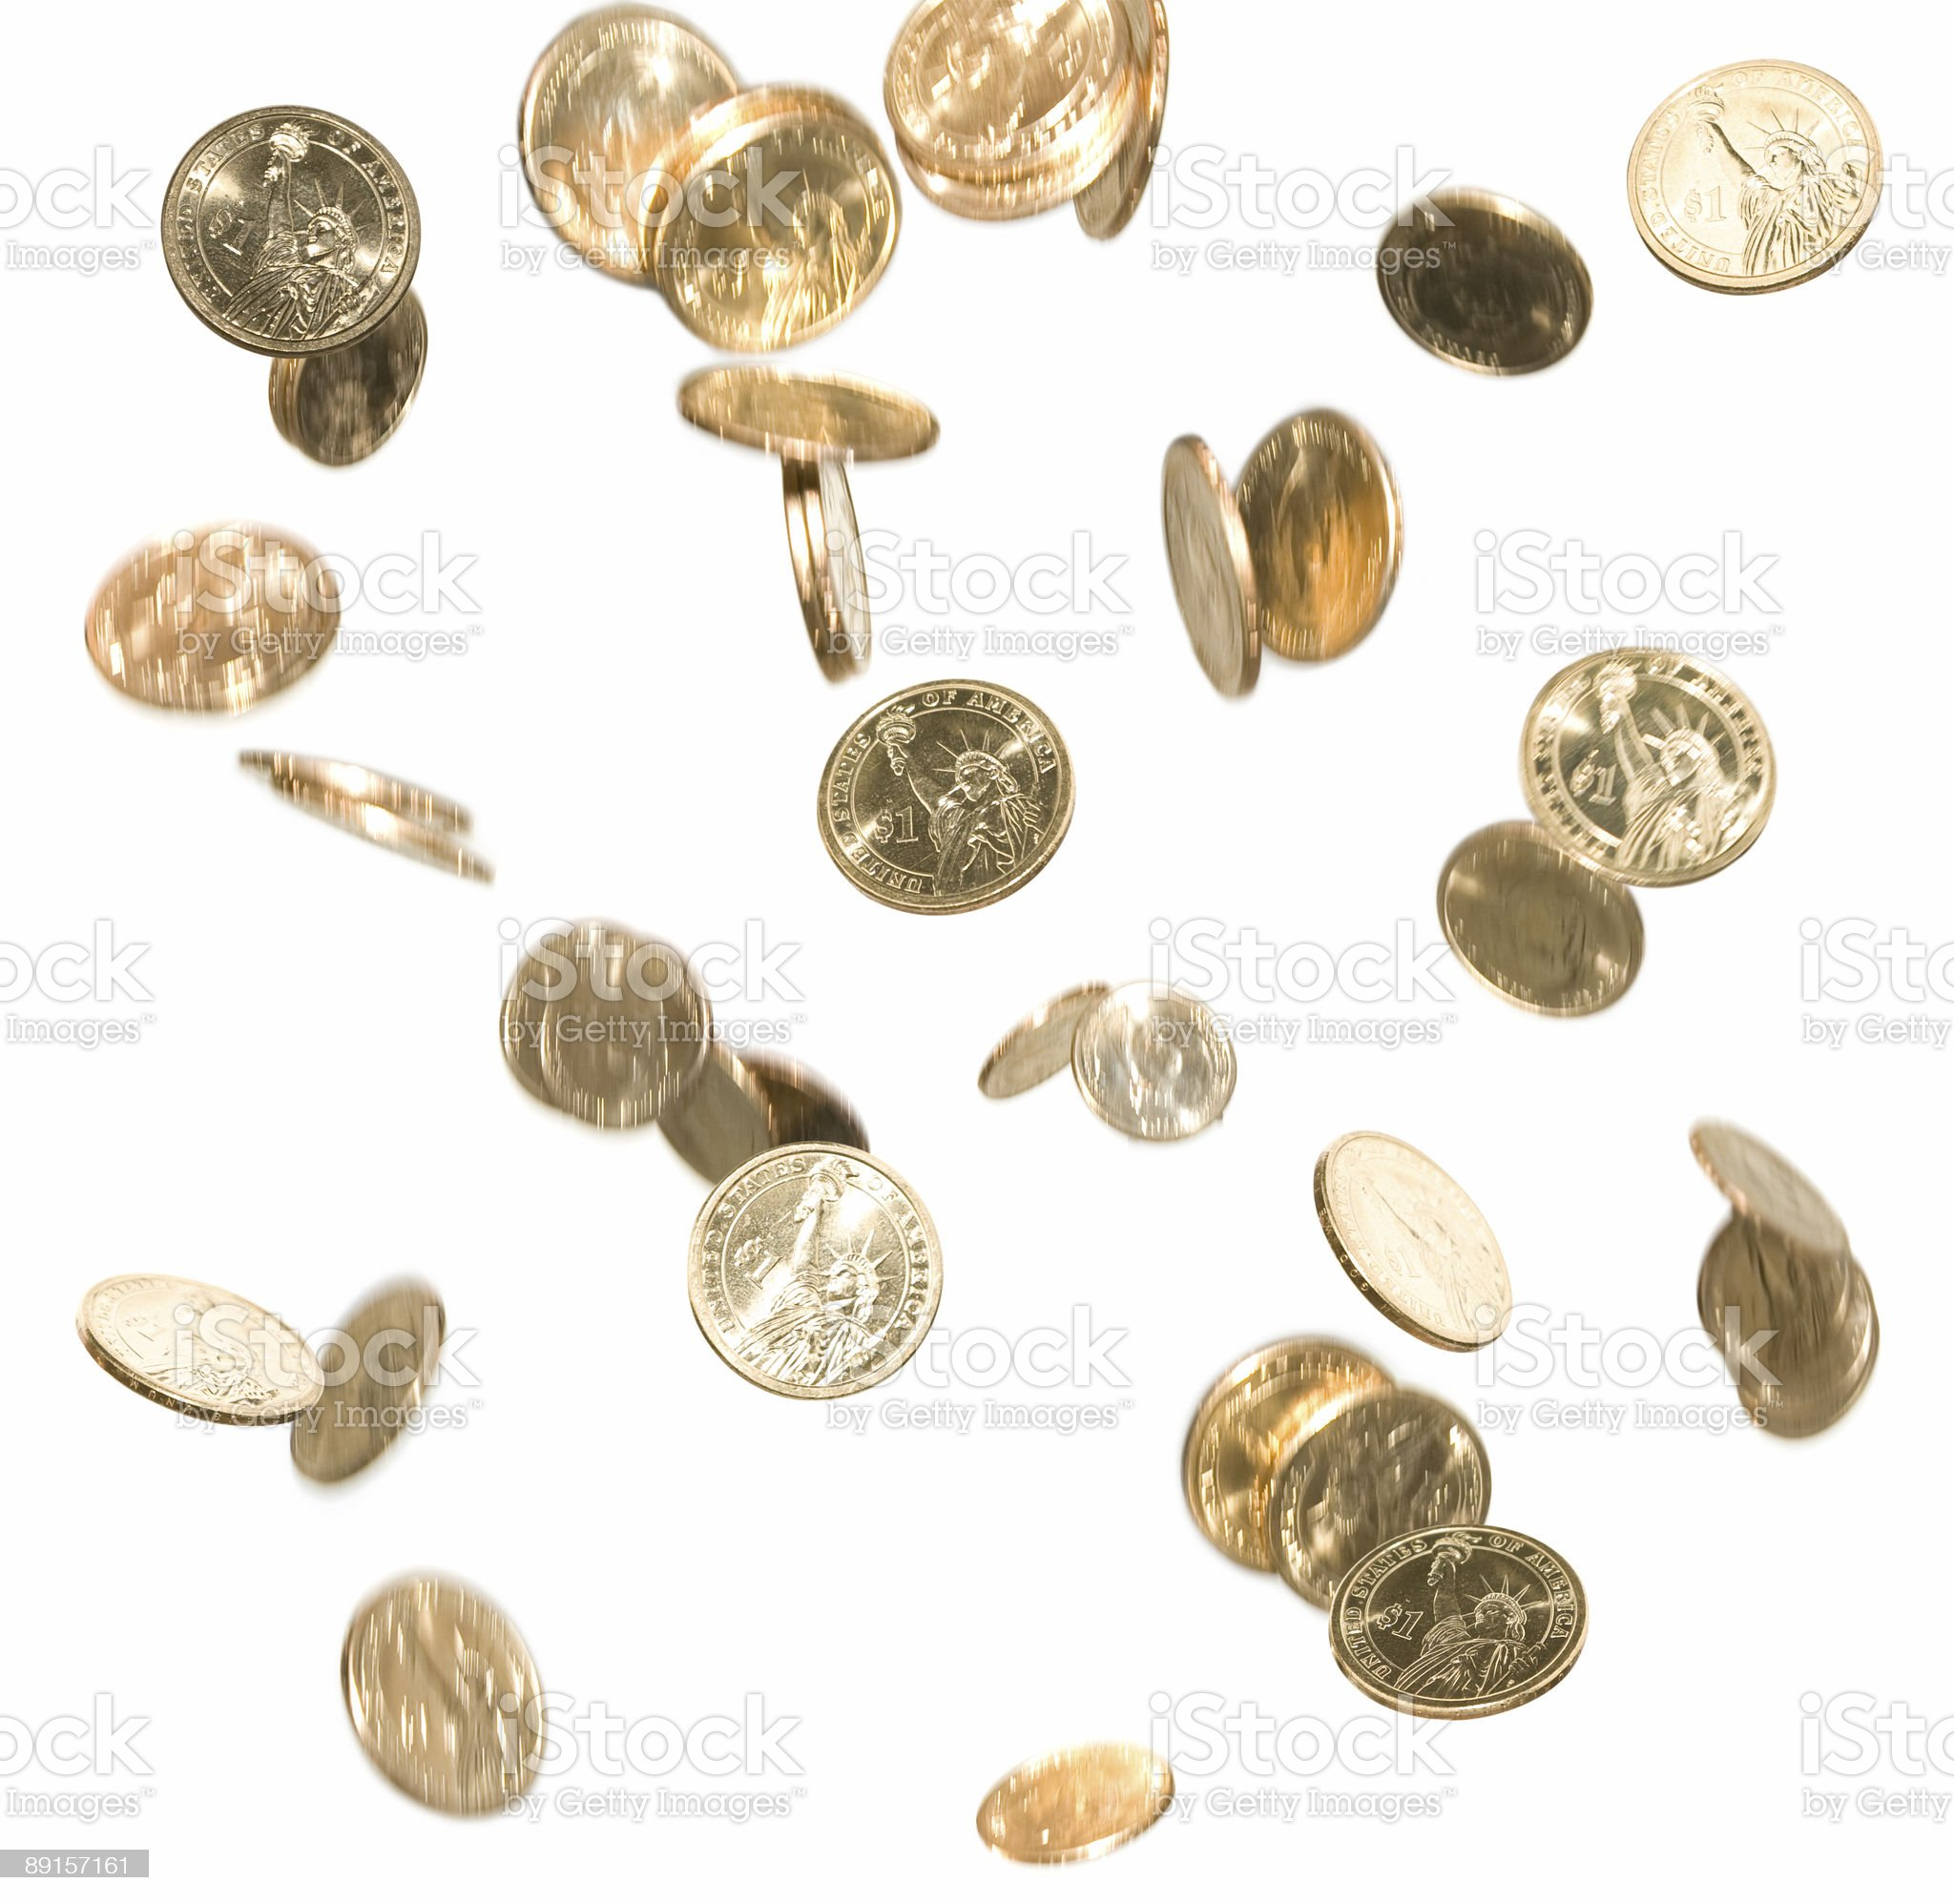 Falling Gold Dollar Coins Money in Motion Isolated on White royalty-free stock photo